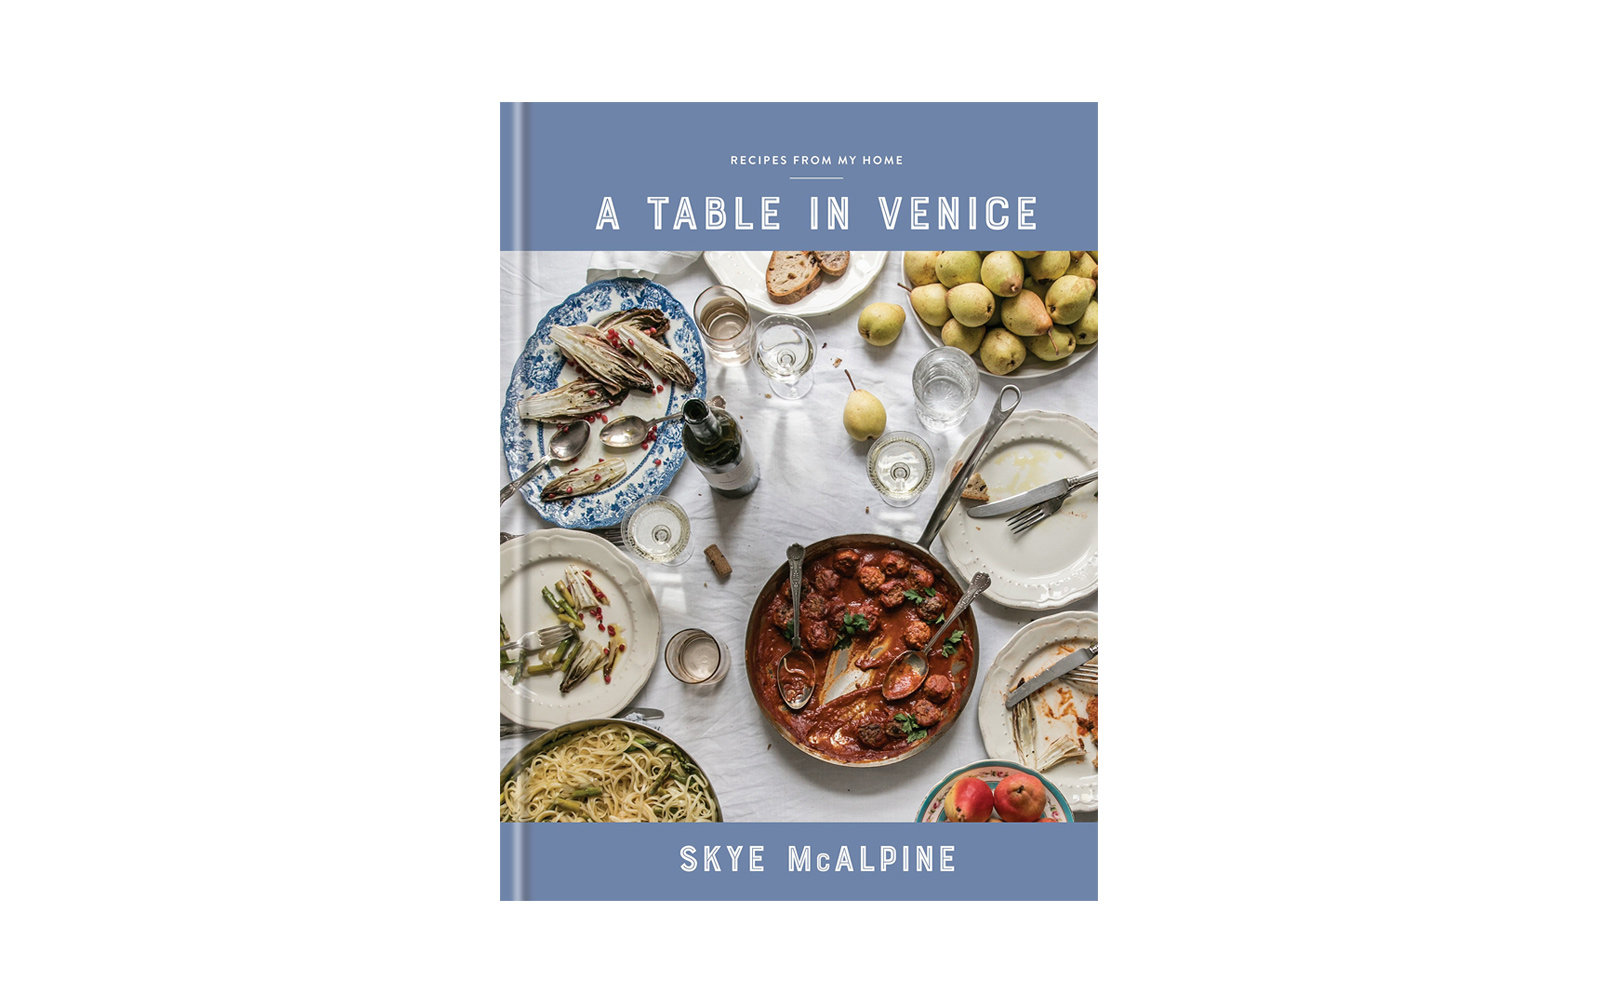 37 new international cookbooks for the traveling home cook travel a table in venice by skye mcalpine forumfinder Choice Image